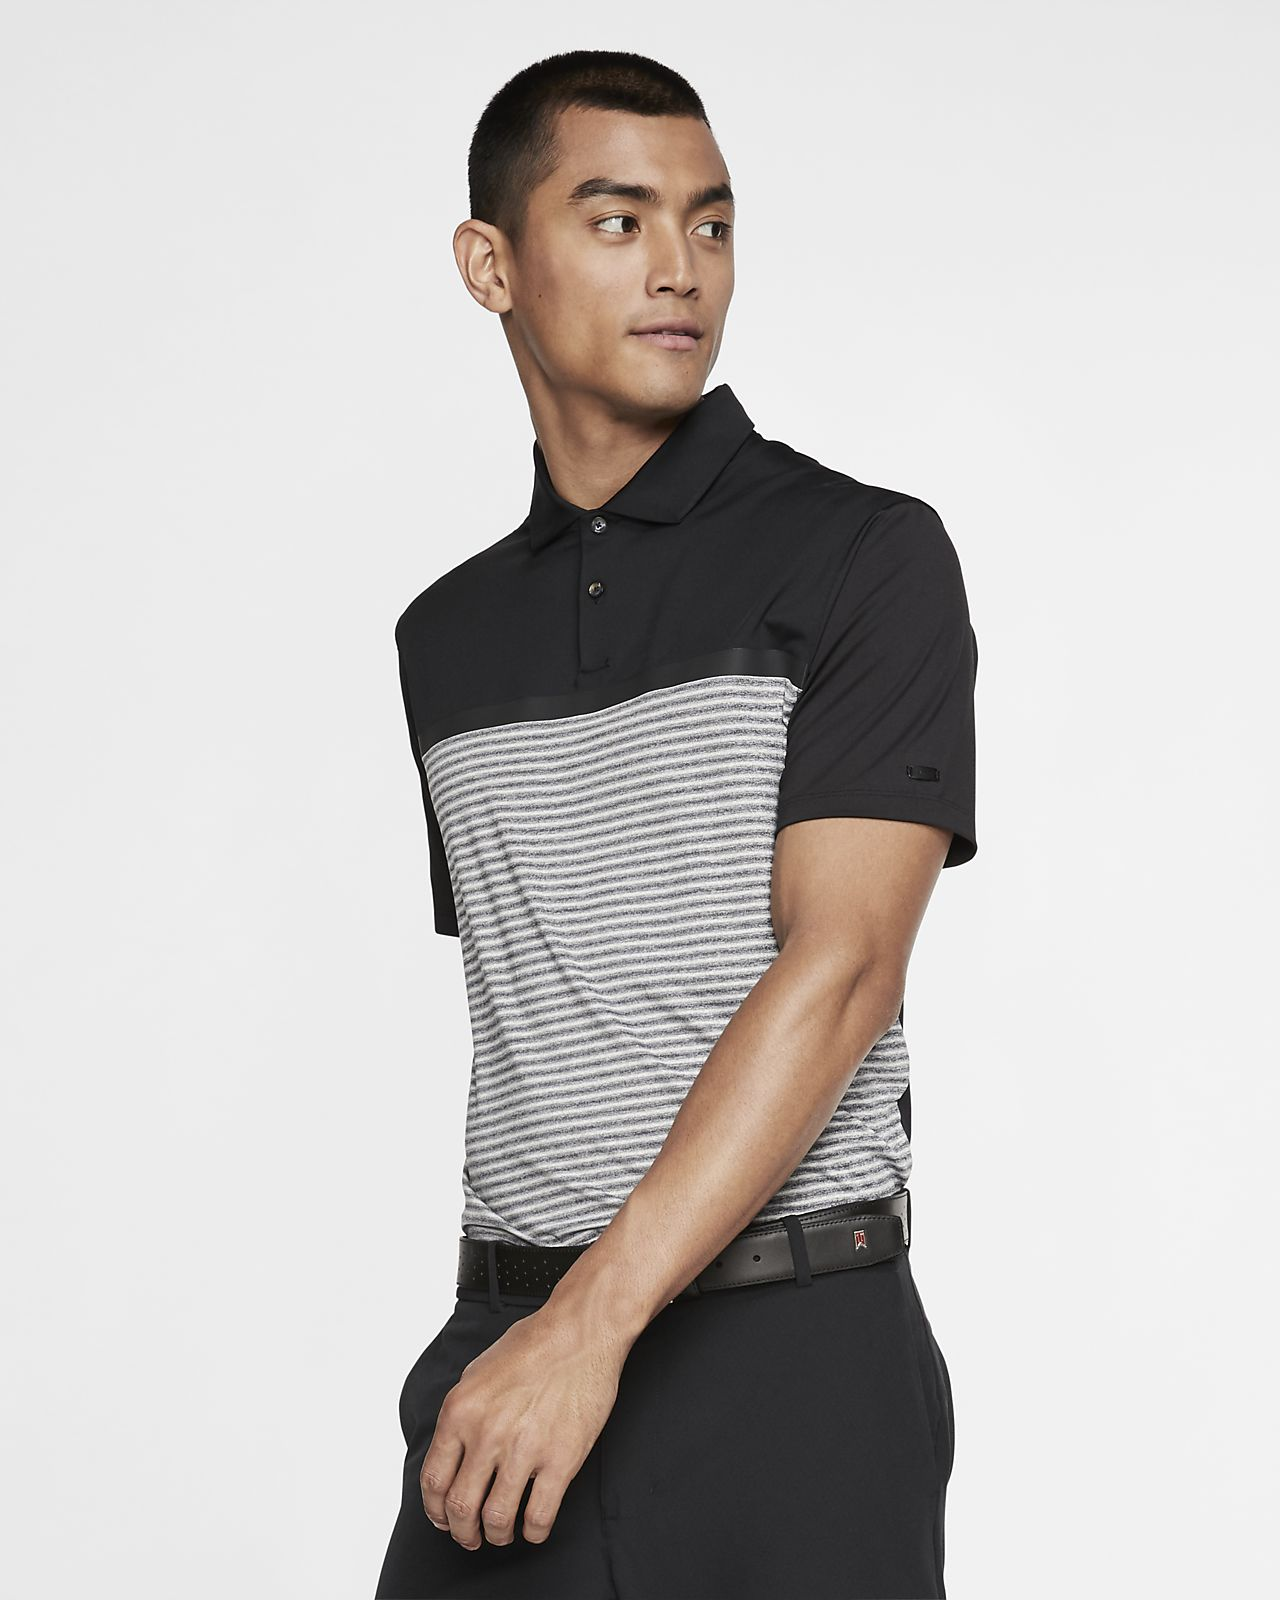 Nike Dri-FIT Tiger Woods Vapor Men's Striped Golf Polo